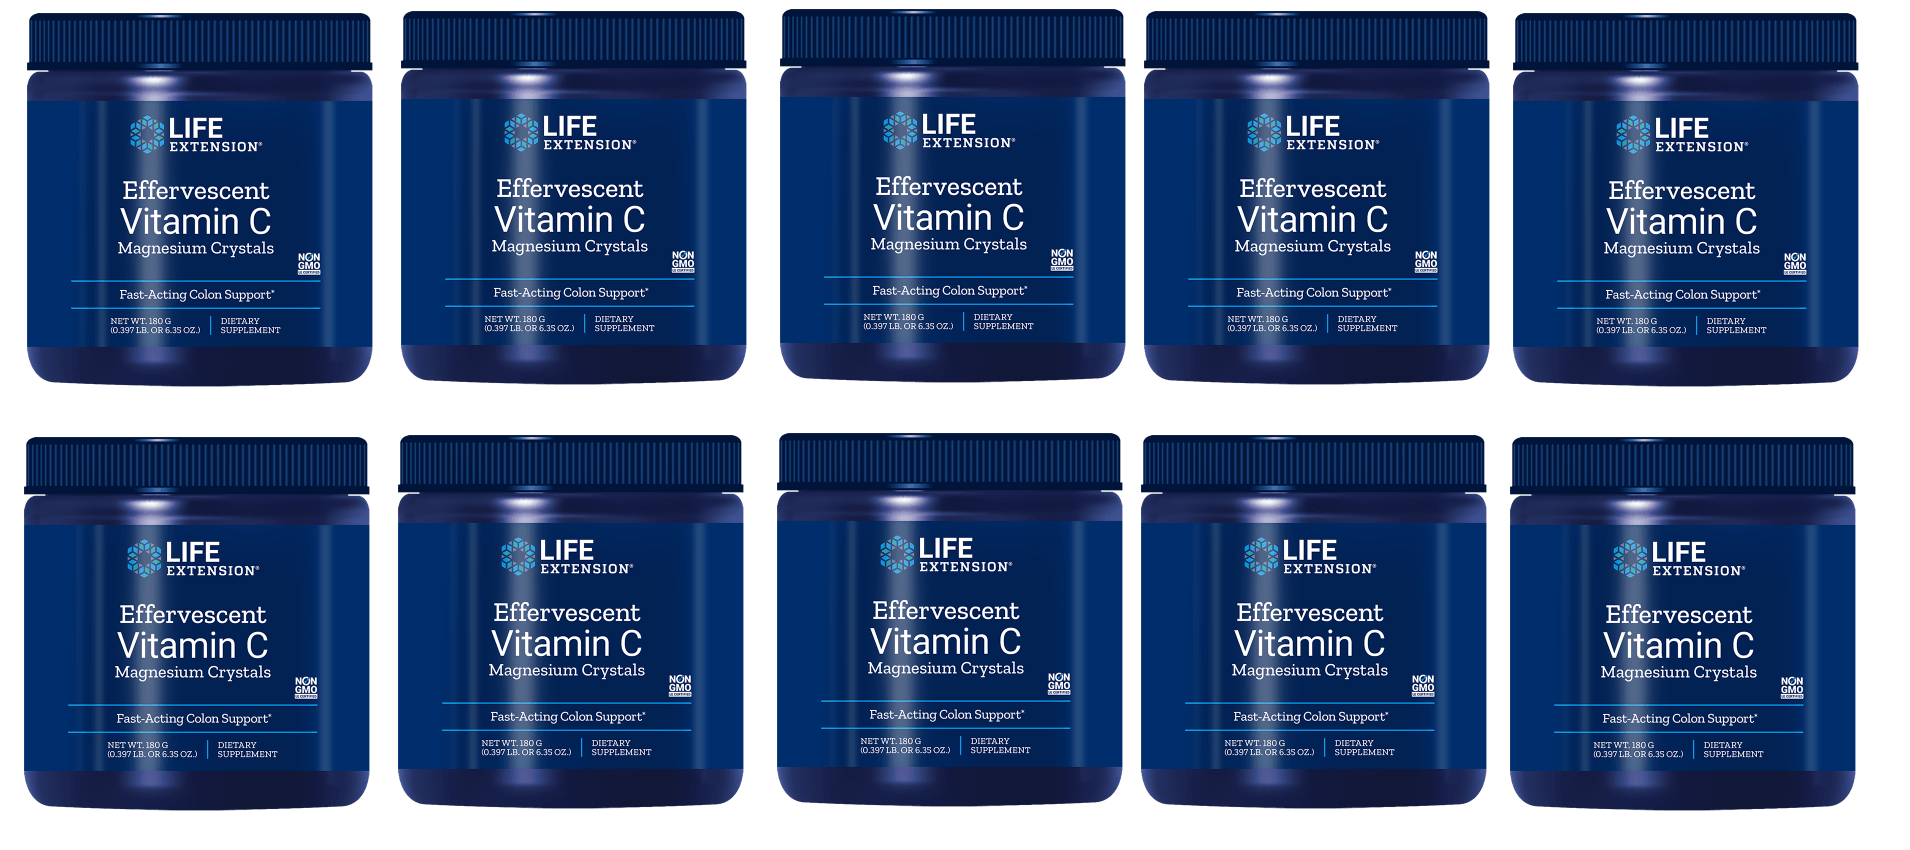 Life Extension Effervescent Vitamin C - Magnesium Crystals, Net Wt. 180 G (0.397 Lb. Or 6.35 Oz.), 10-pack